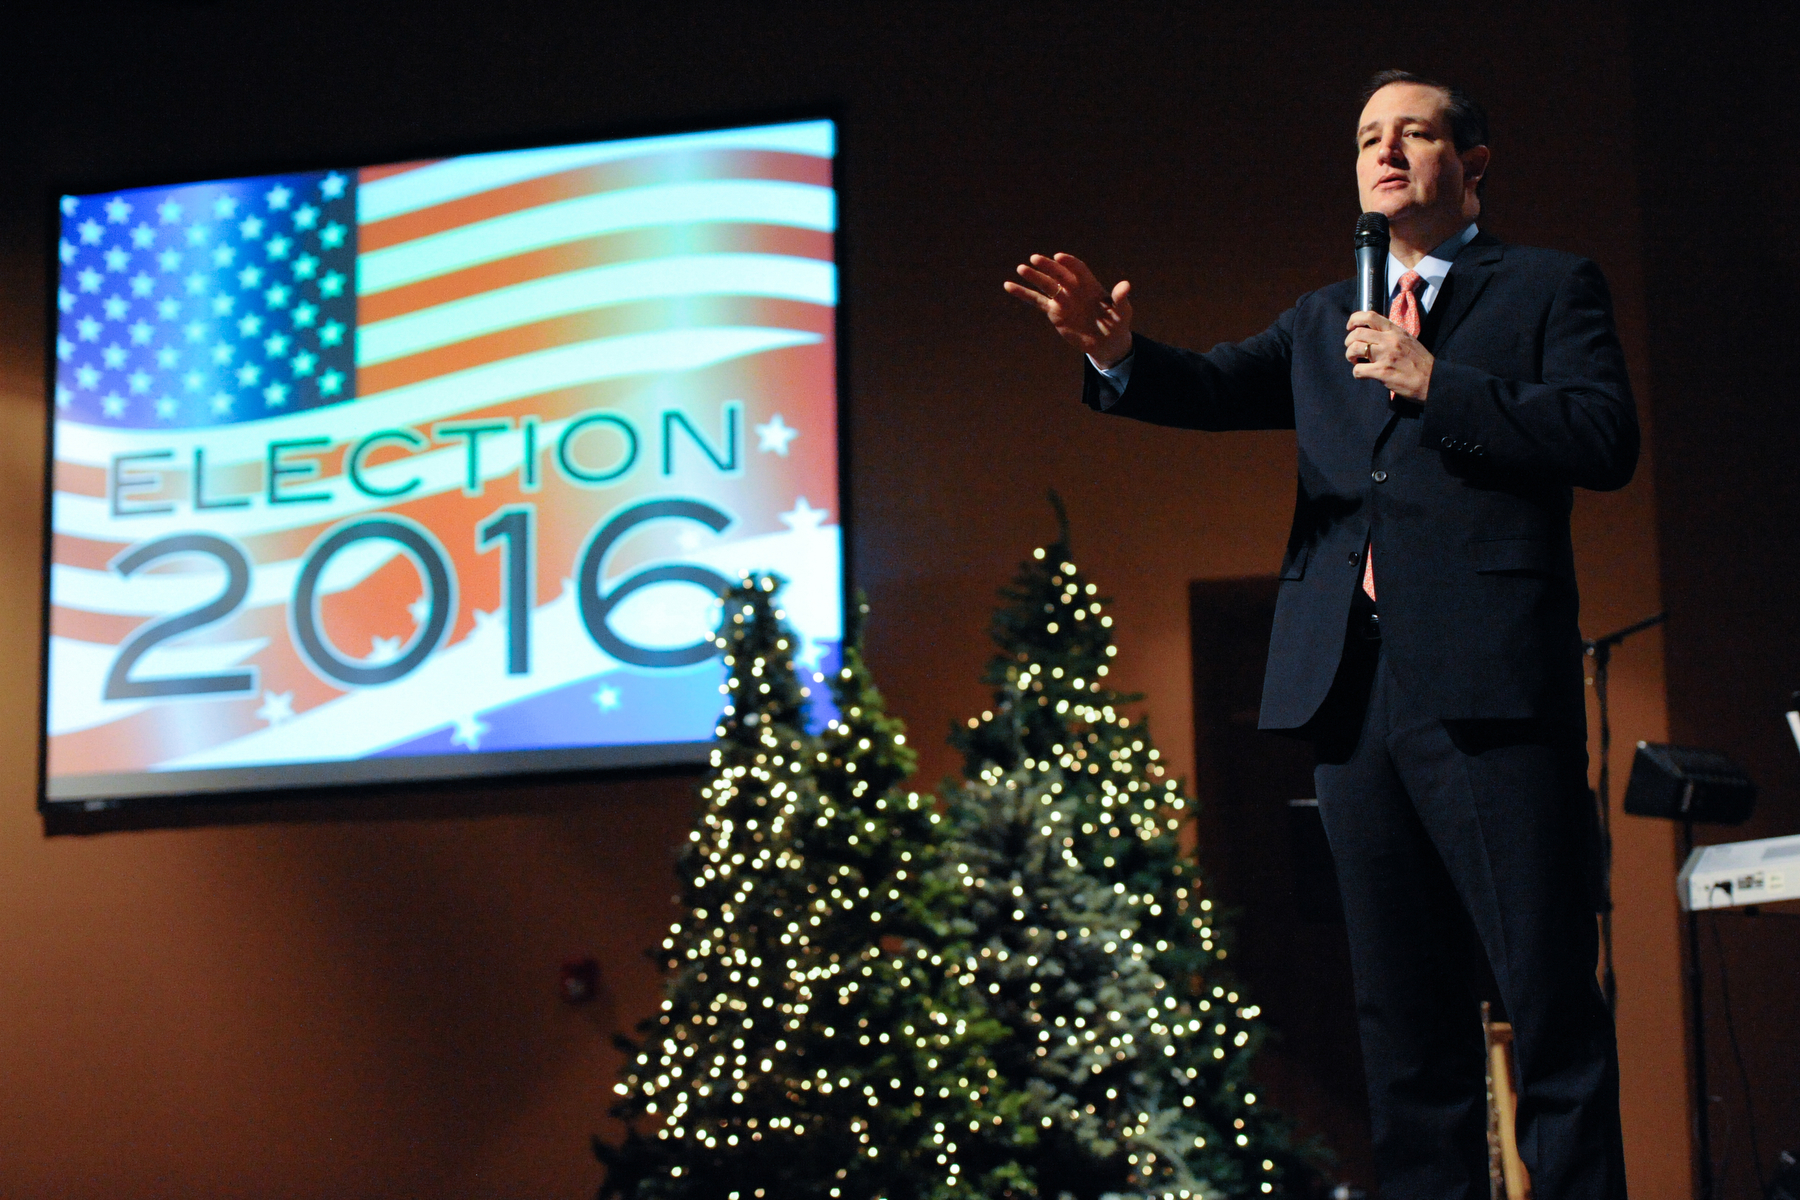 U.S. Republican presidential candidate Ted Cruz speaks during Sunday worship at Christian Life Assembly of God Church in Des Moines, Iowa November 29, 2015. REUTERS/Mark Kauzlarich